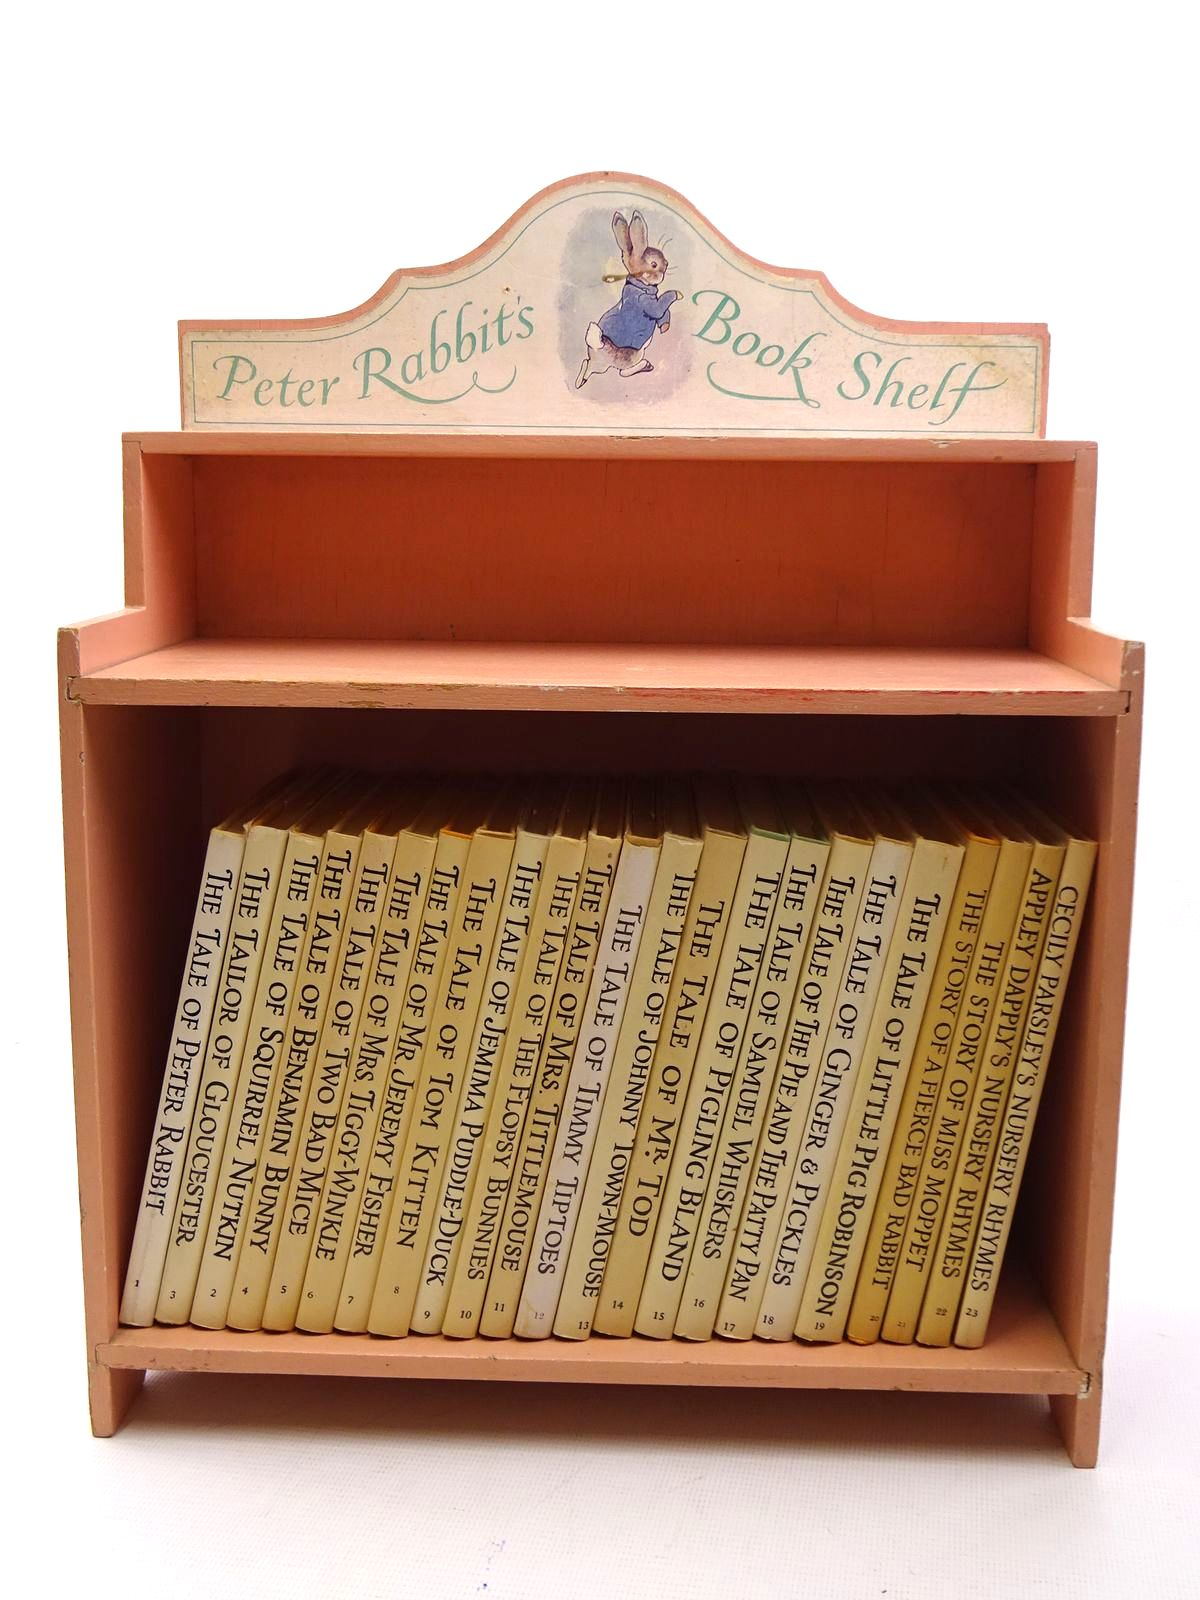 Photo of THE WORLD OF PETER RABBIT (COMPLETE SET OF THE TALES WITH BOOKSHELF) written by Potter, Beatrix illustrated by Potter, Beatrix published by Frederick Warne & Co Ltd. (STOCK CODE: 2125362)  for sale by Stella & Rose's Books